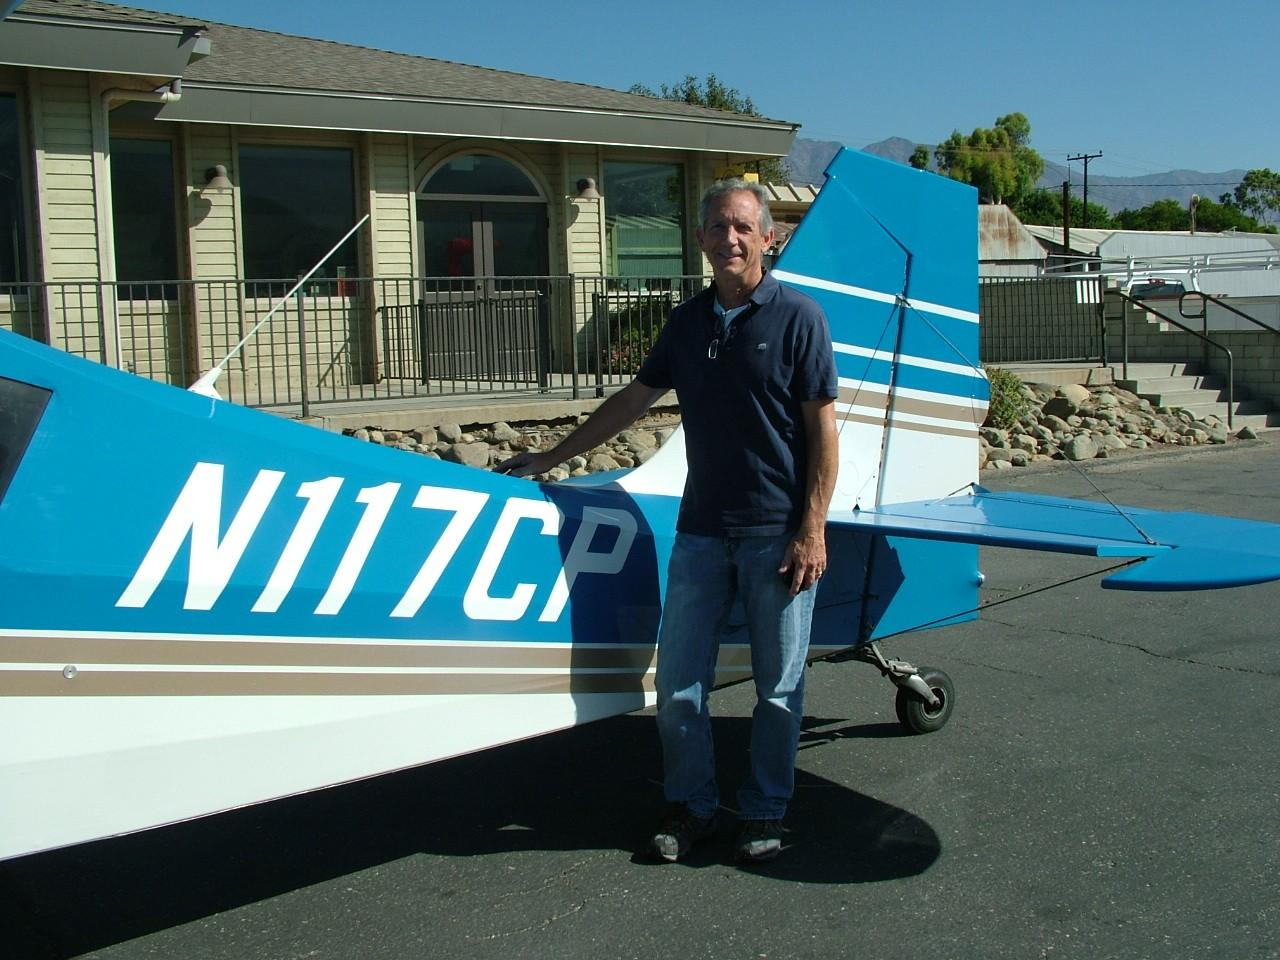 Tailwheel Endorsement - Michael Zimmering